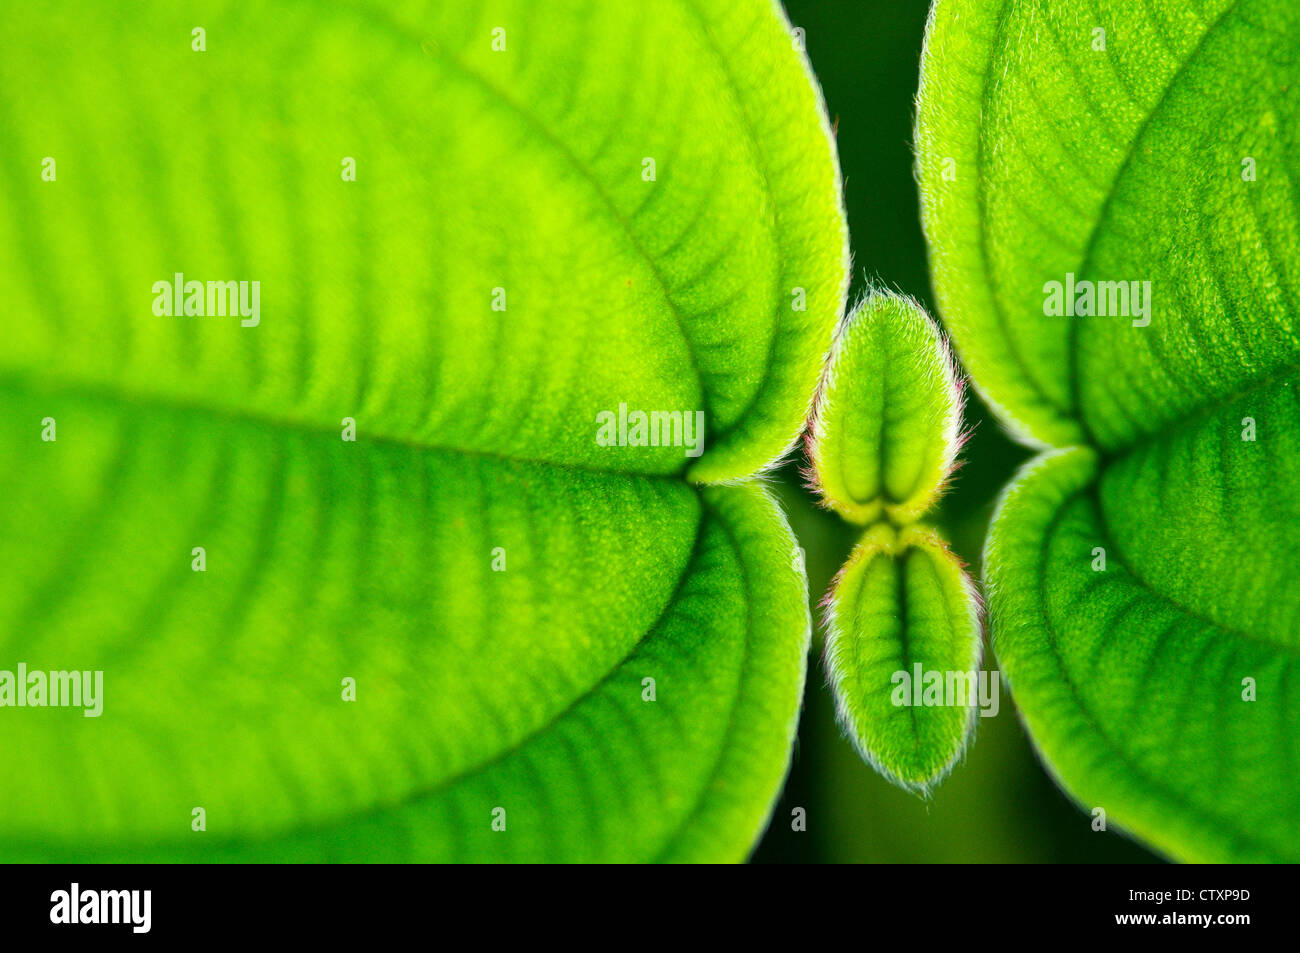 Stunning green leaf  macro shot showing the texture and vibrant colour during a war and sunny day. Stock Photo